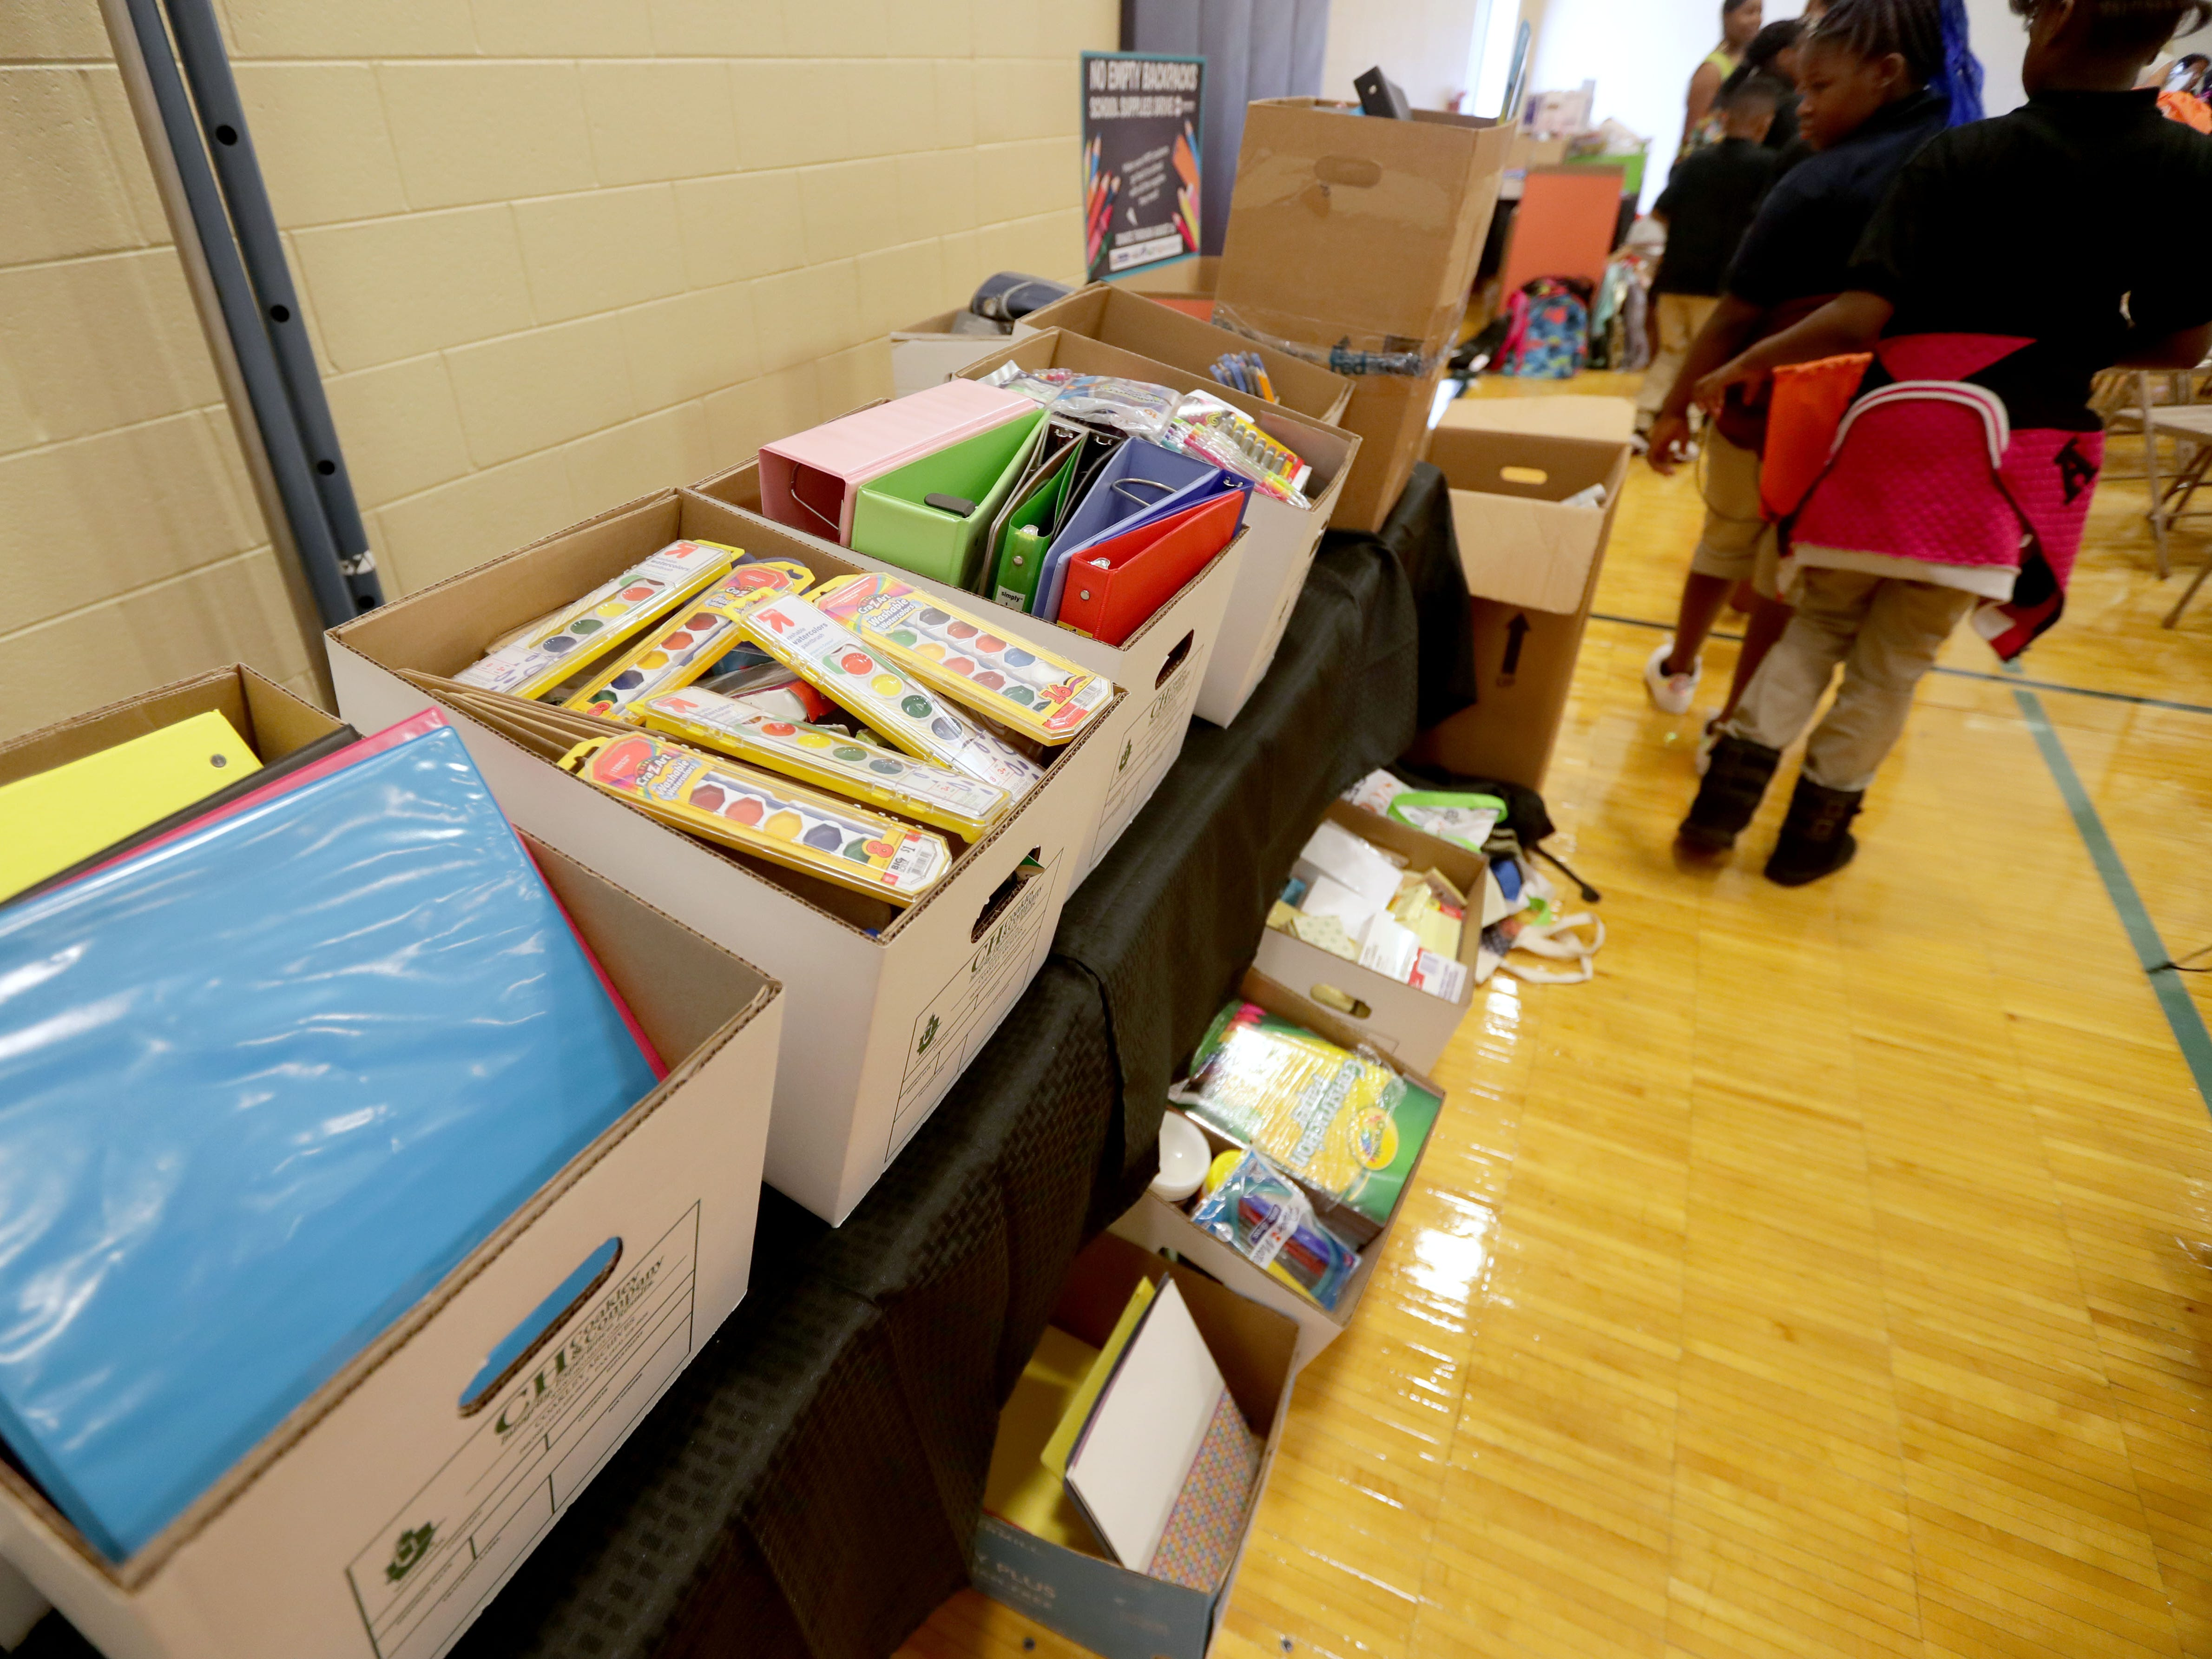 These are some of the many school supplies donated for students.